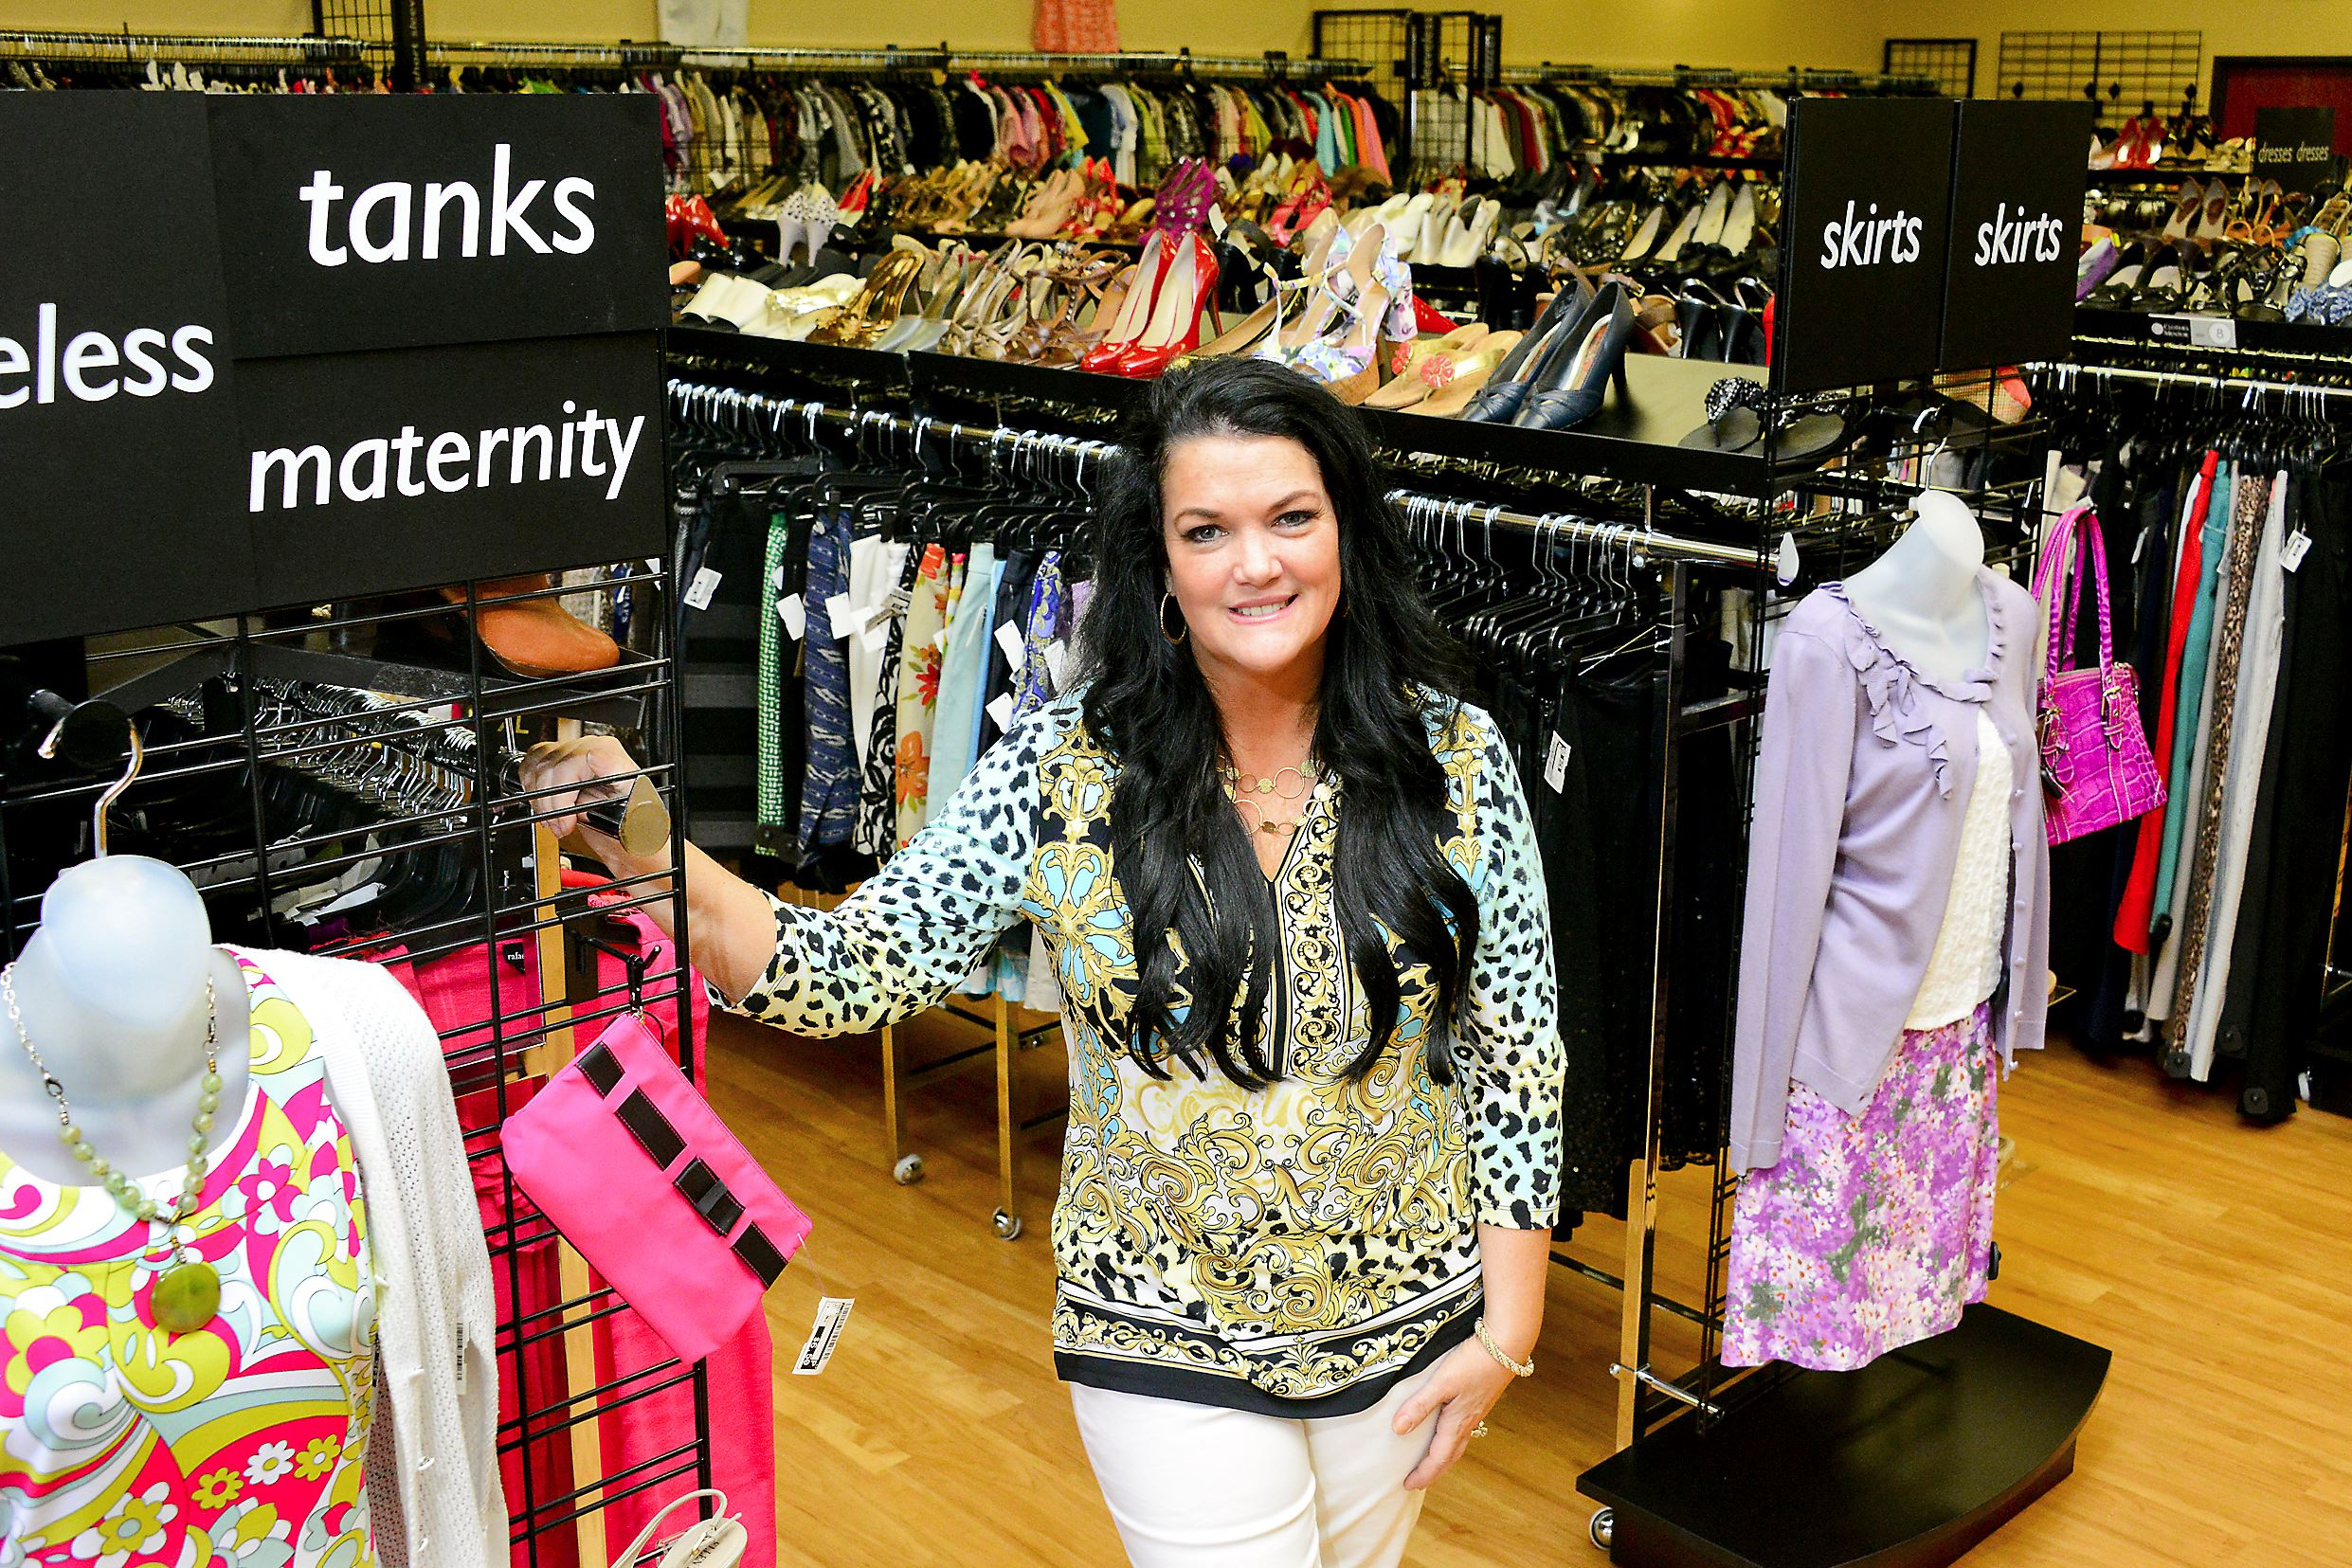 Beautiful Clothes Mentor Franchisee Andrea Zabinski Standing In Her Organized Store  Full Of Clothes Racks With Shelves